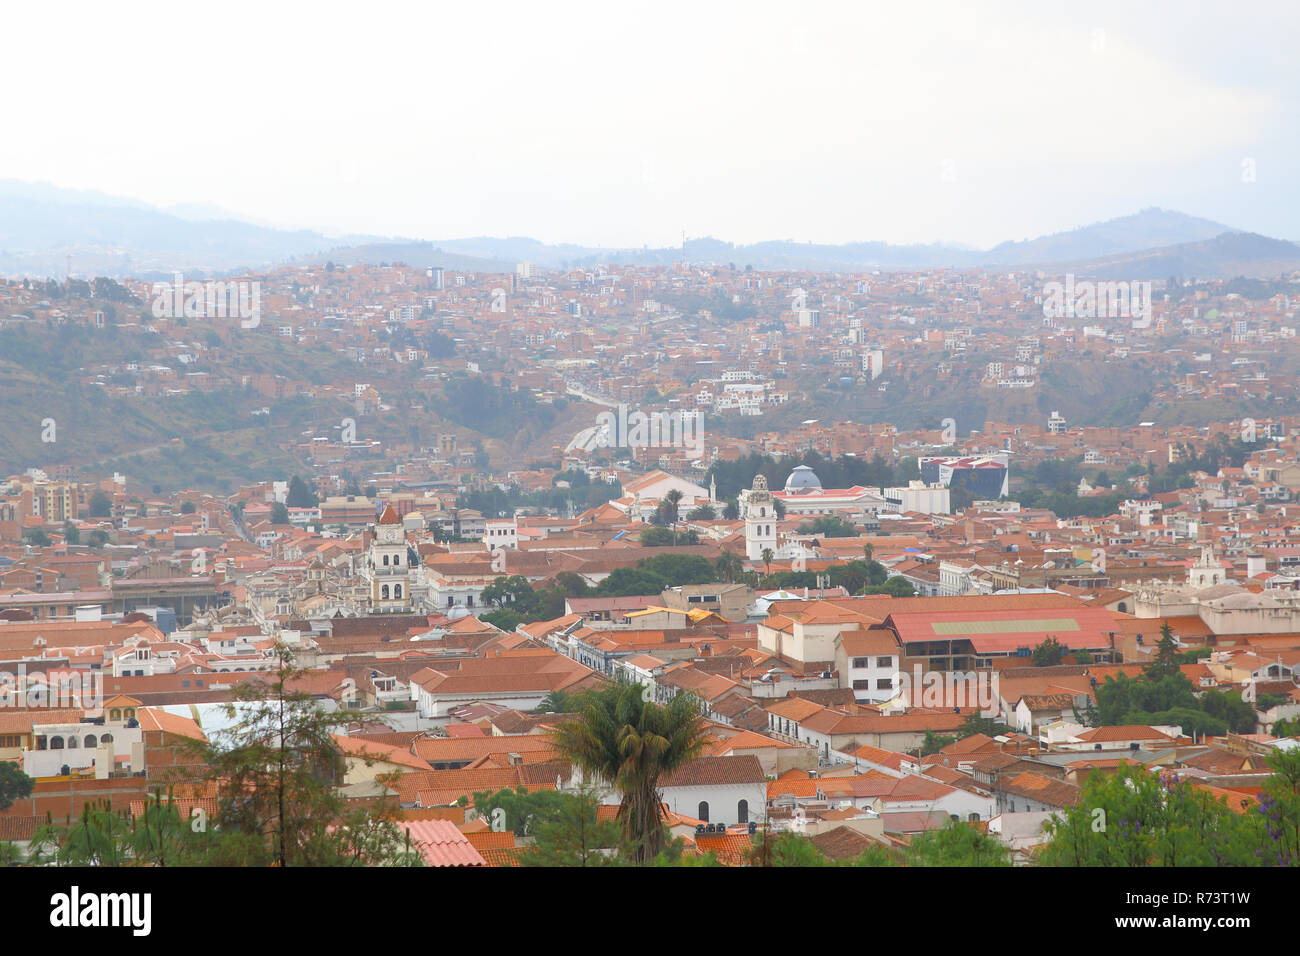 Aerial view of of Sucre, Bolivia with mountains visible in the background. City view. Stock Photo